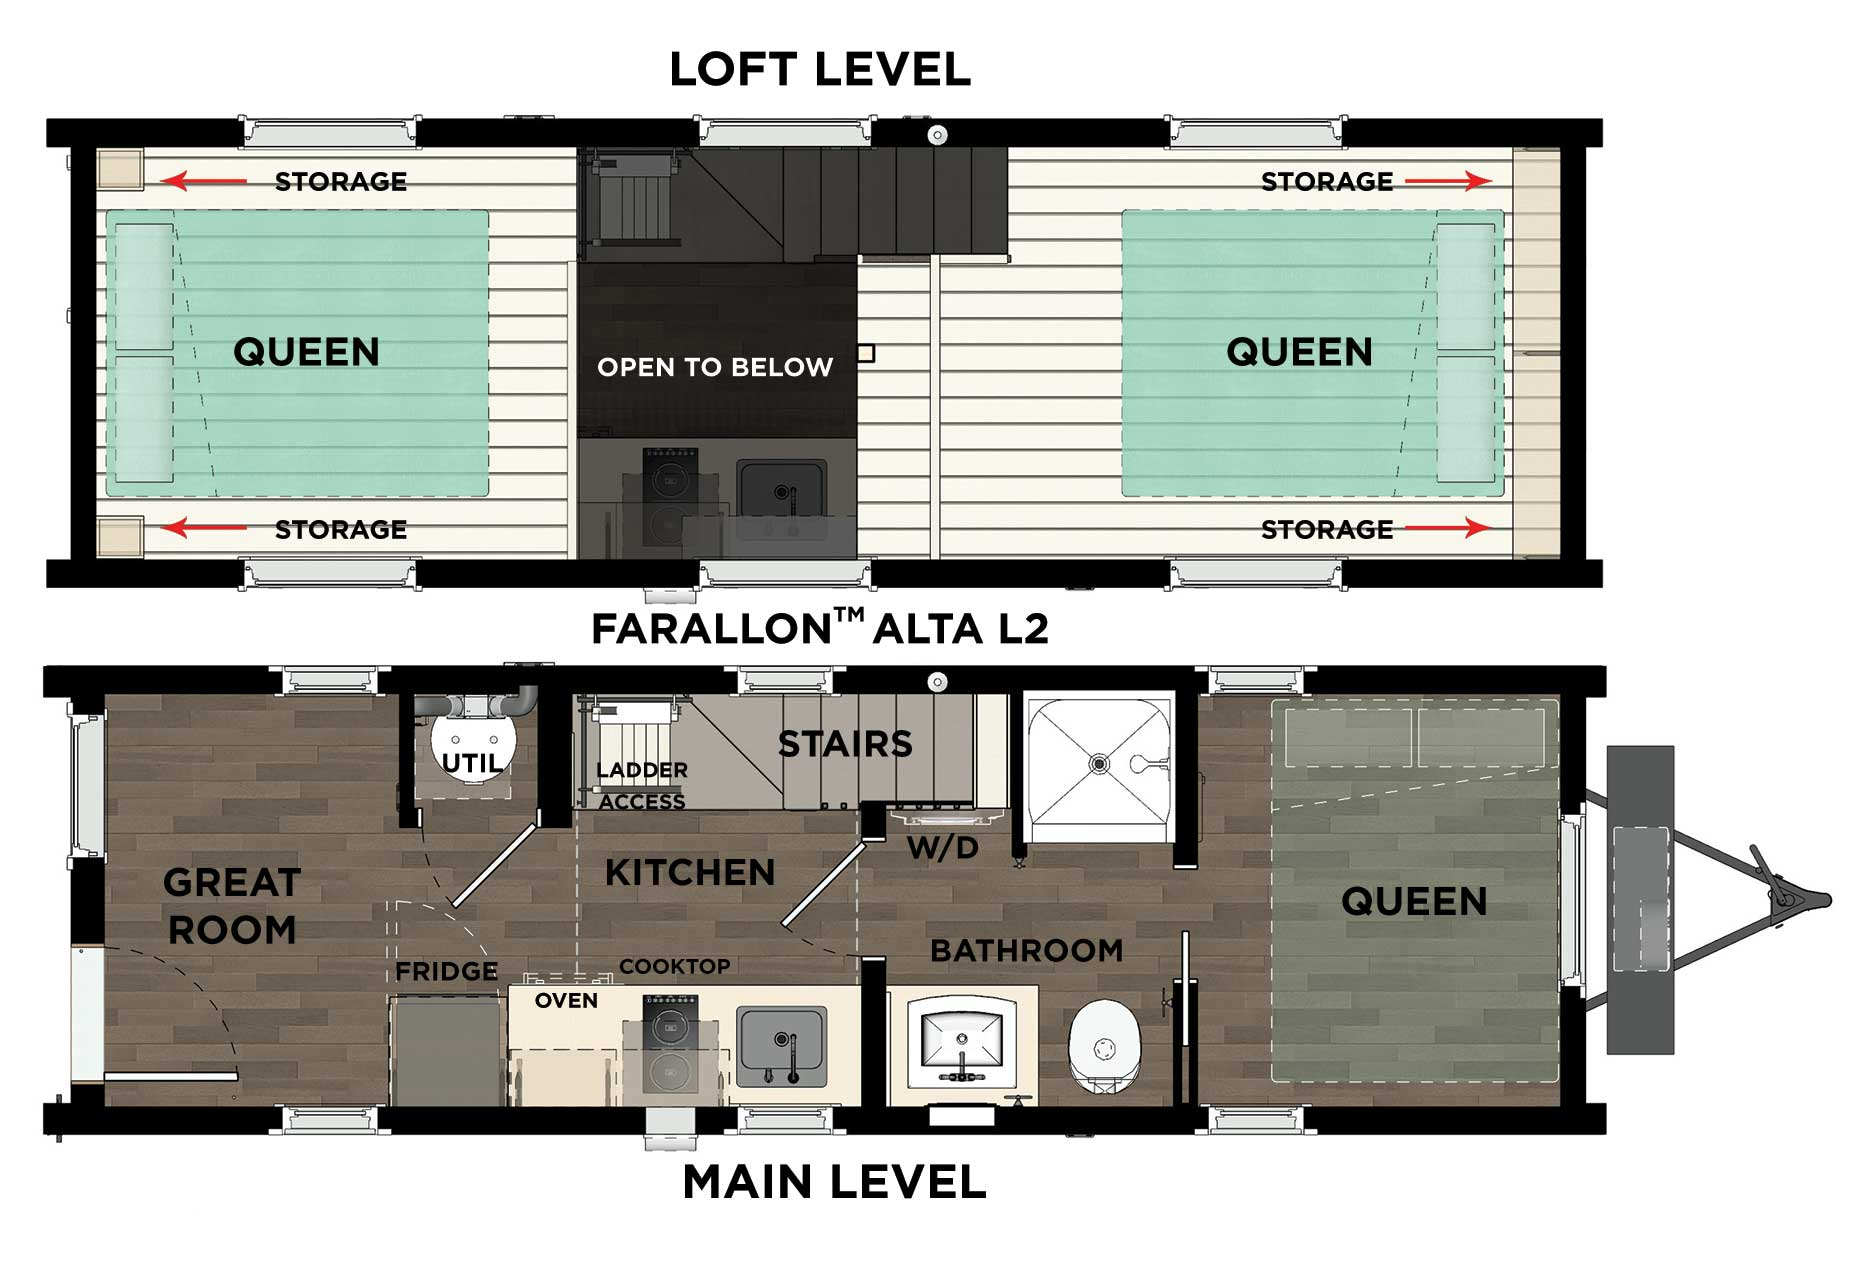 Farallon Alta L2 Floor Plan